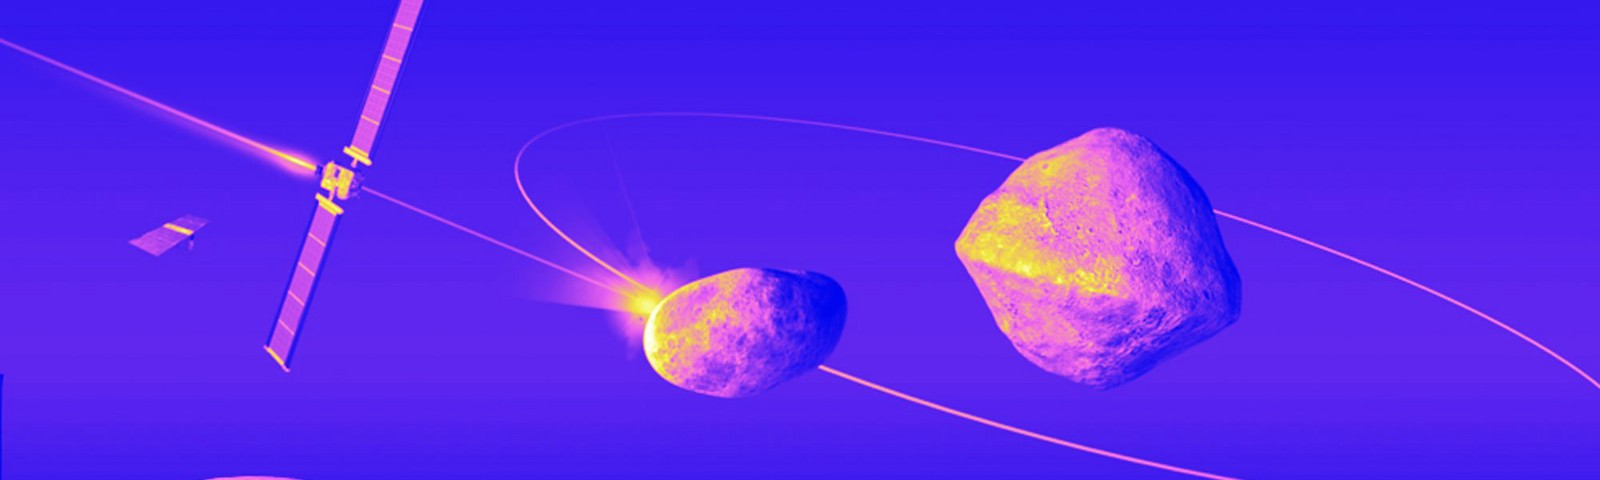 An asteroid orbiting a moonlet with a planet in the image's lower corner. A satellite flies toward the orbiting asteroid.